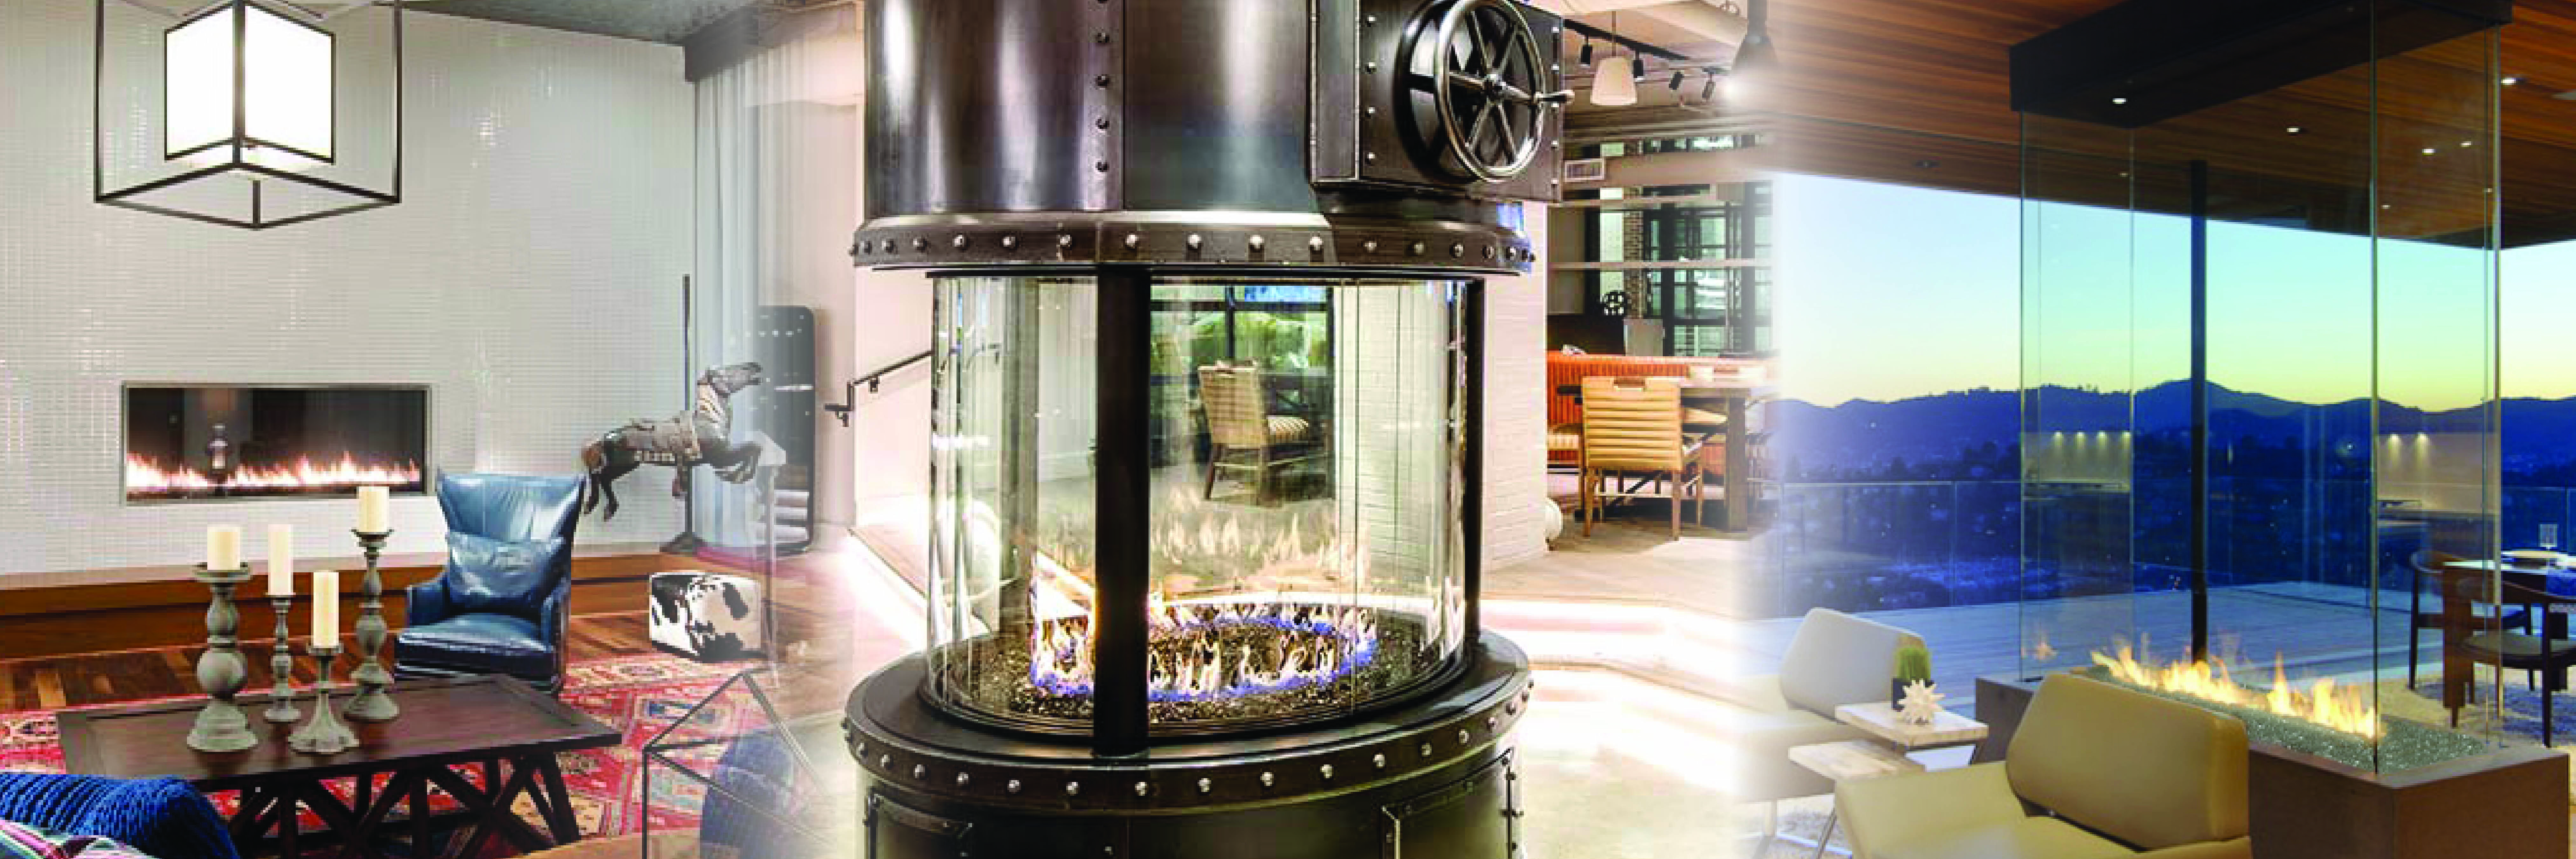 Linear Circular 4Sided Gas Fireplaces